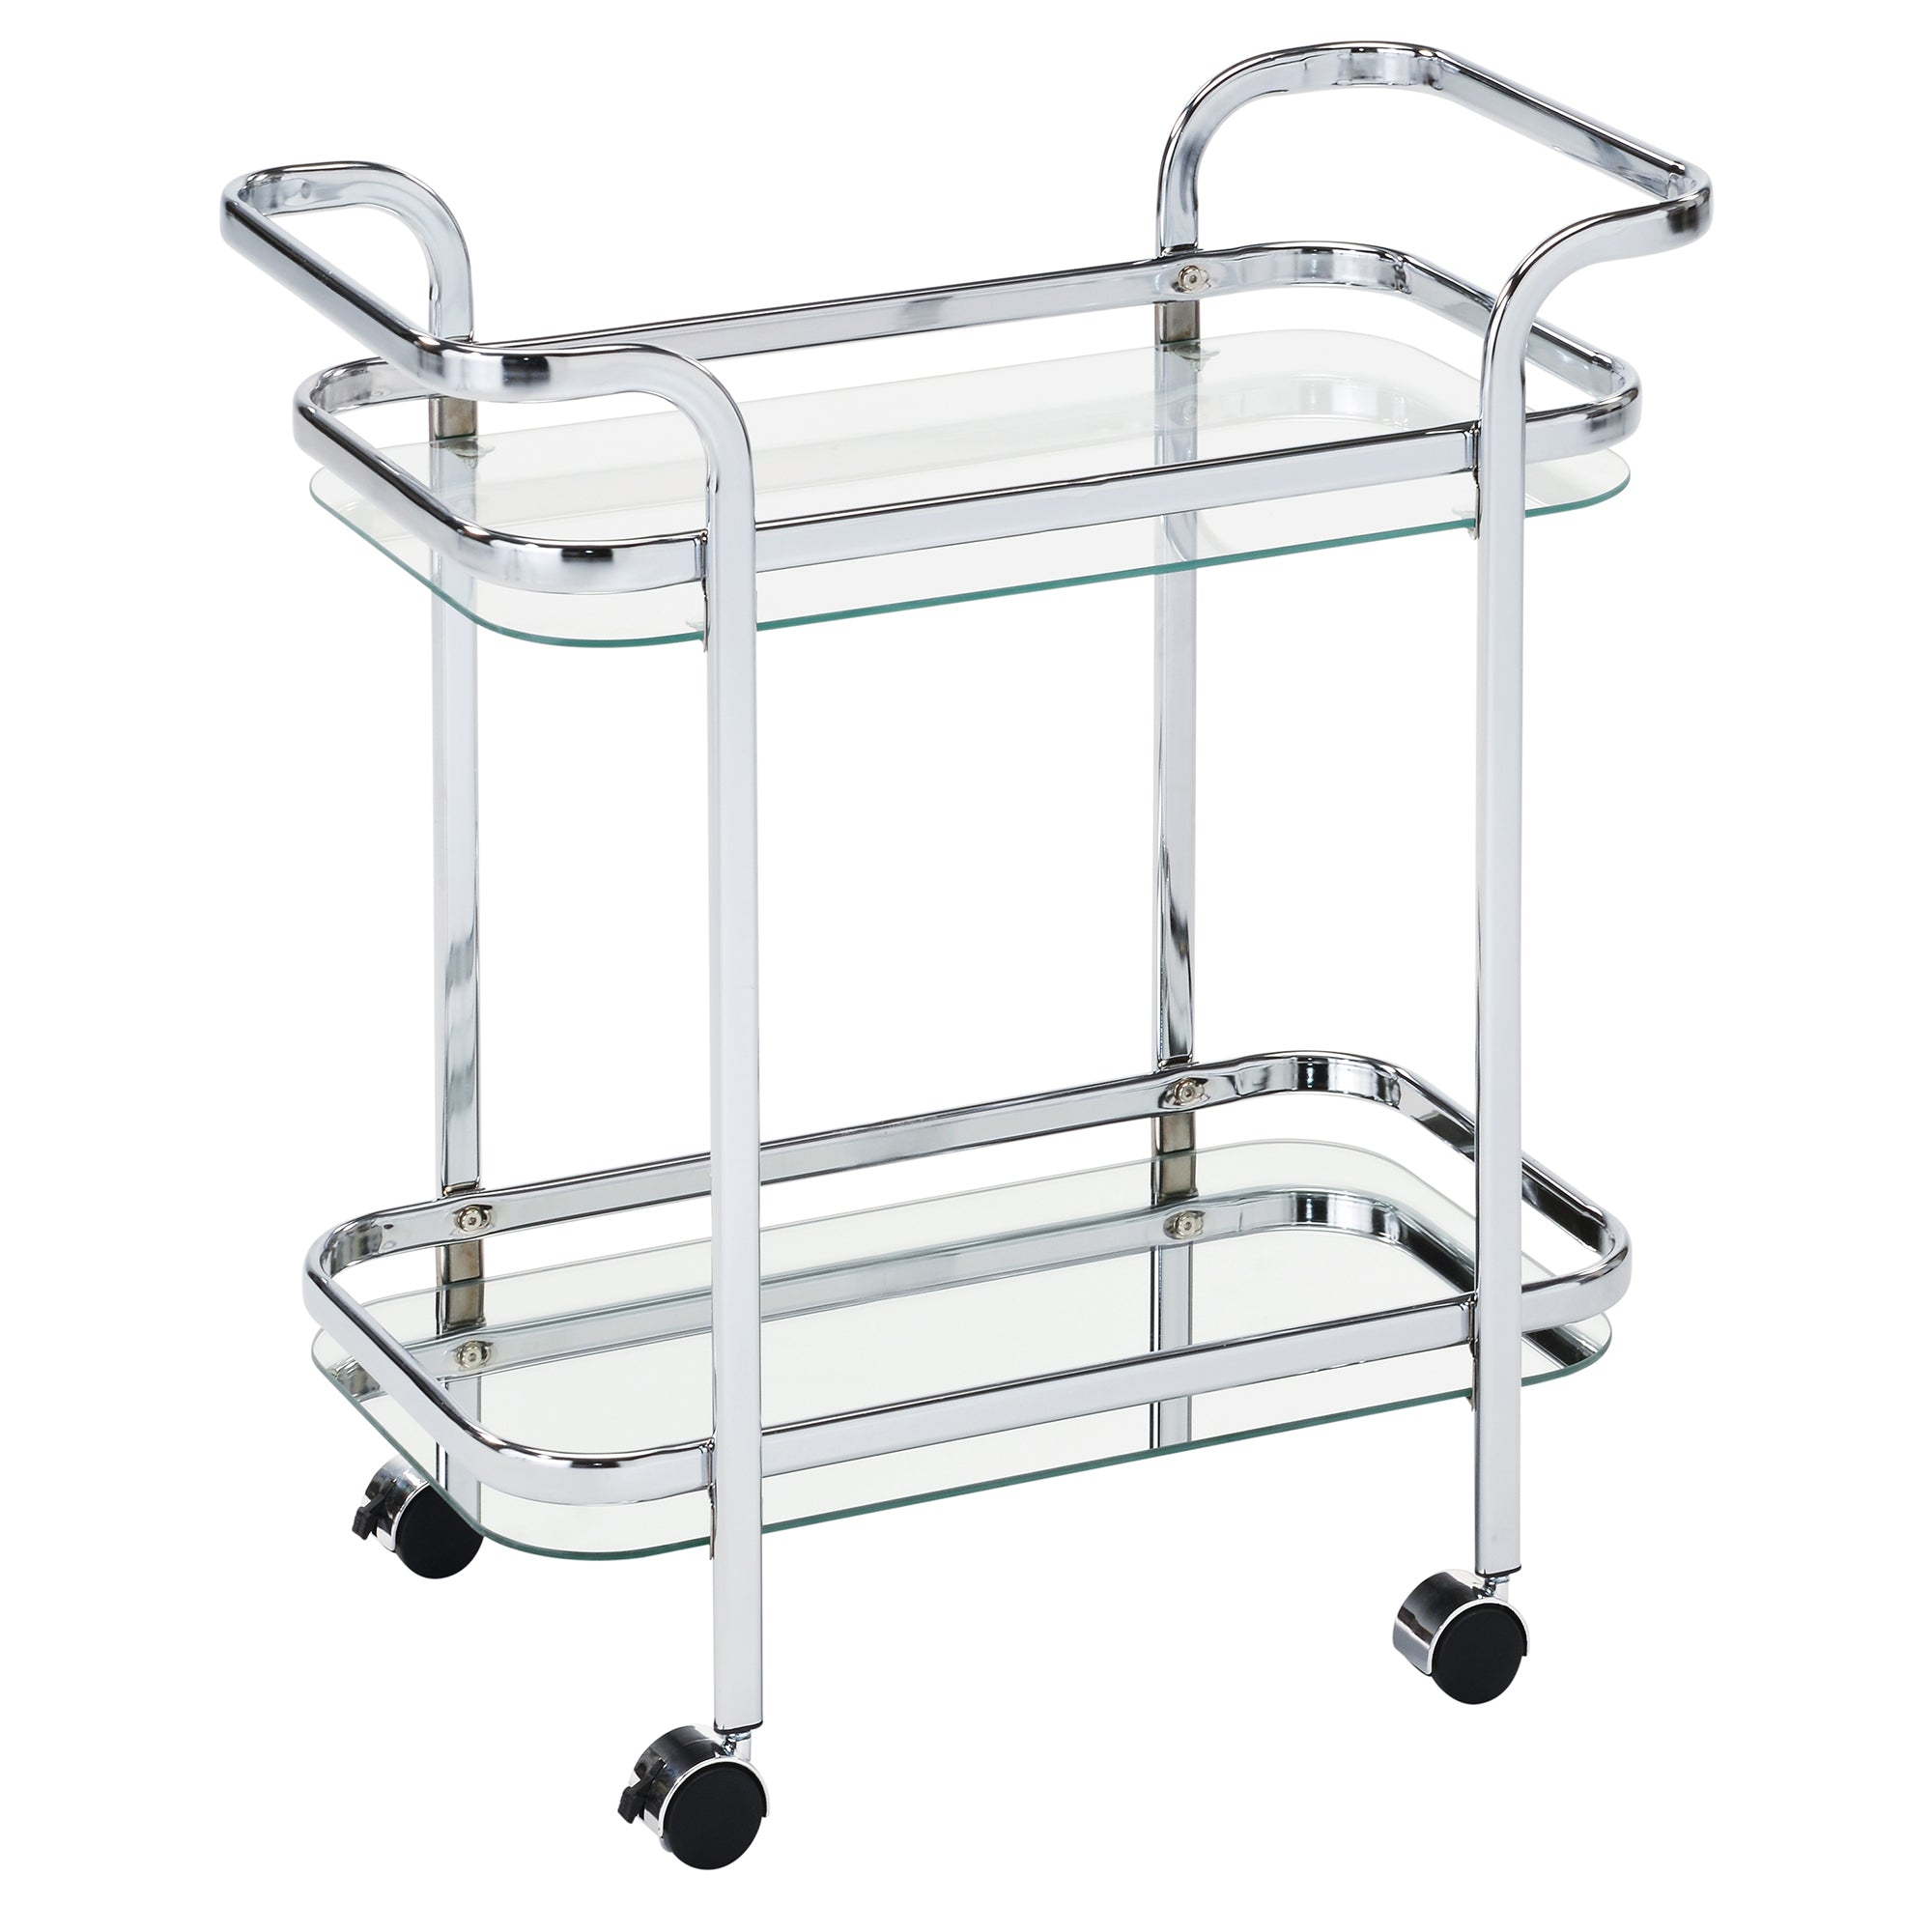 Candace & Basil Furniture |  2 - Tier Trolley - Chrome